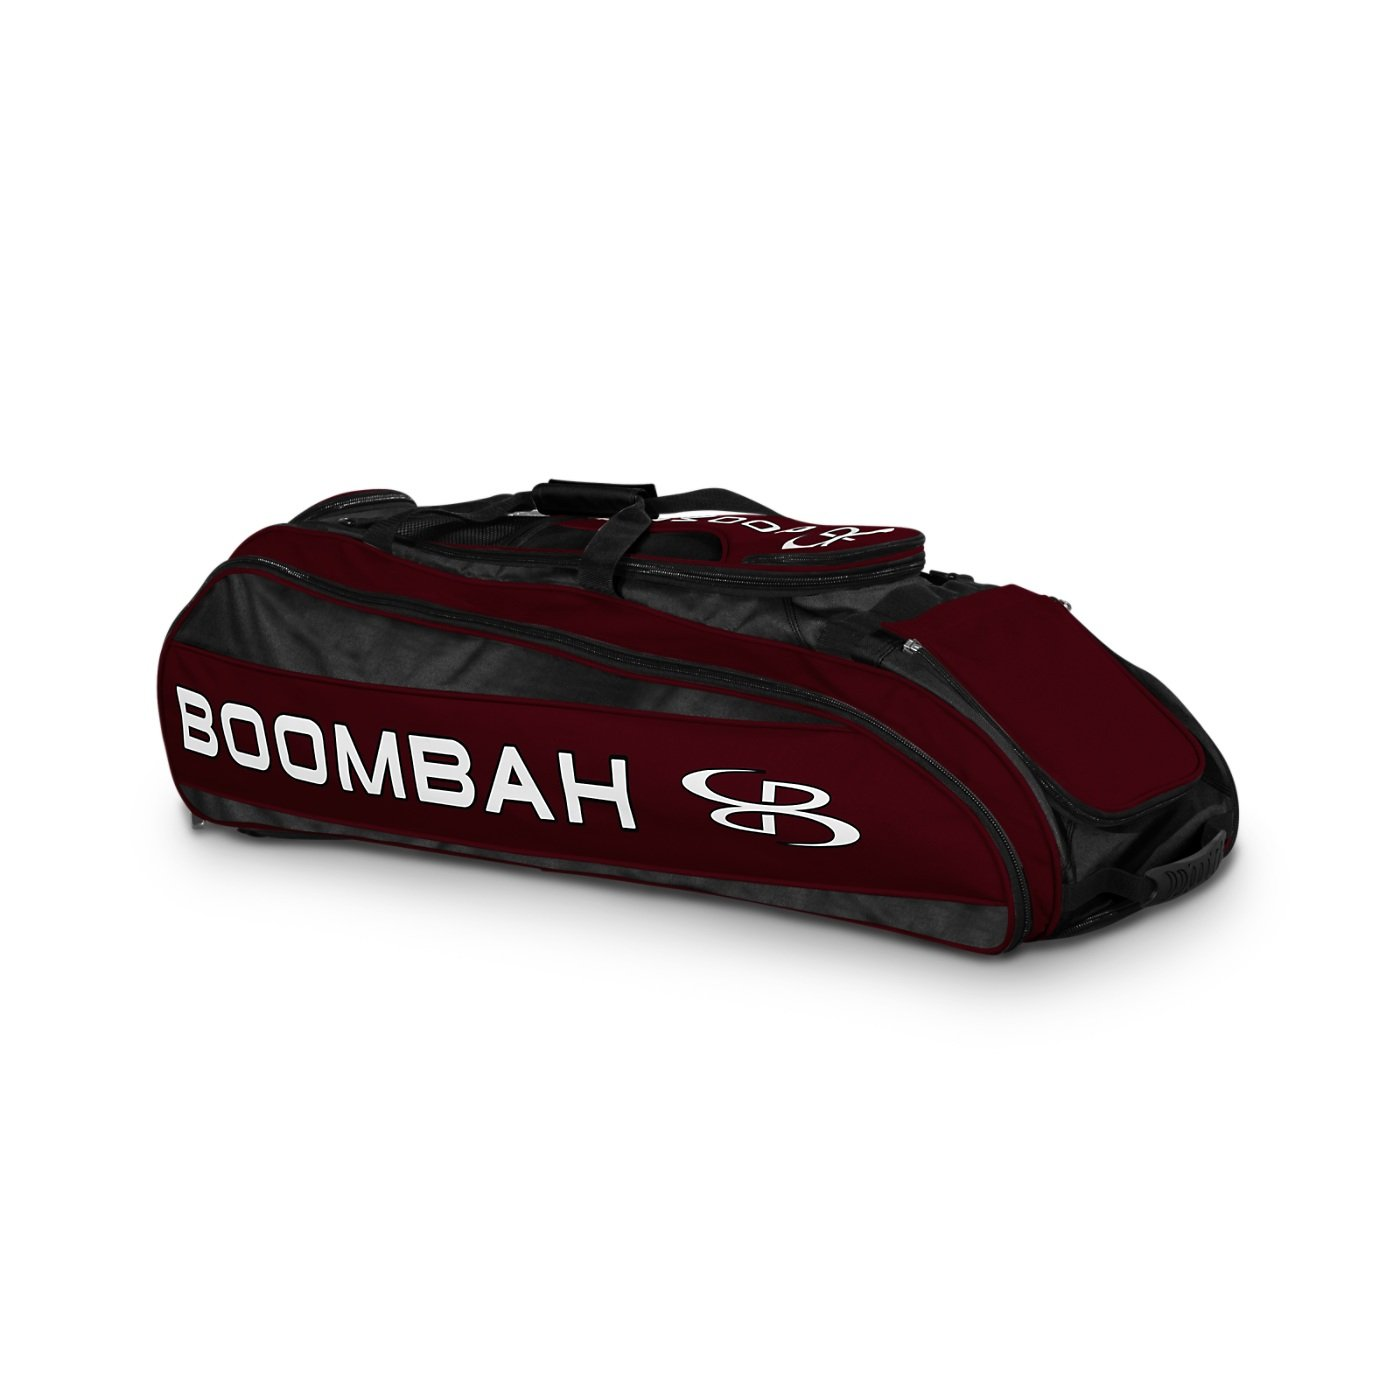 Boombah Beast Baseball / Softball Bat Bag - 40'' x 14'' x 13'' - Black/Maroon - Holds 8 Bats, Glove & Shoe Compartments by Boombah (Image #1)